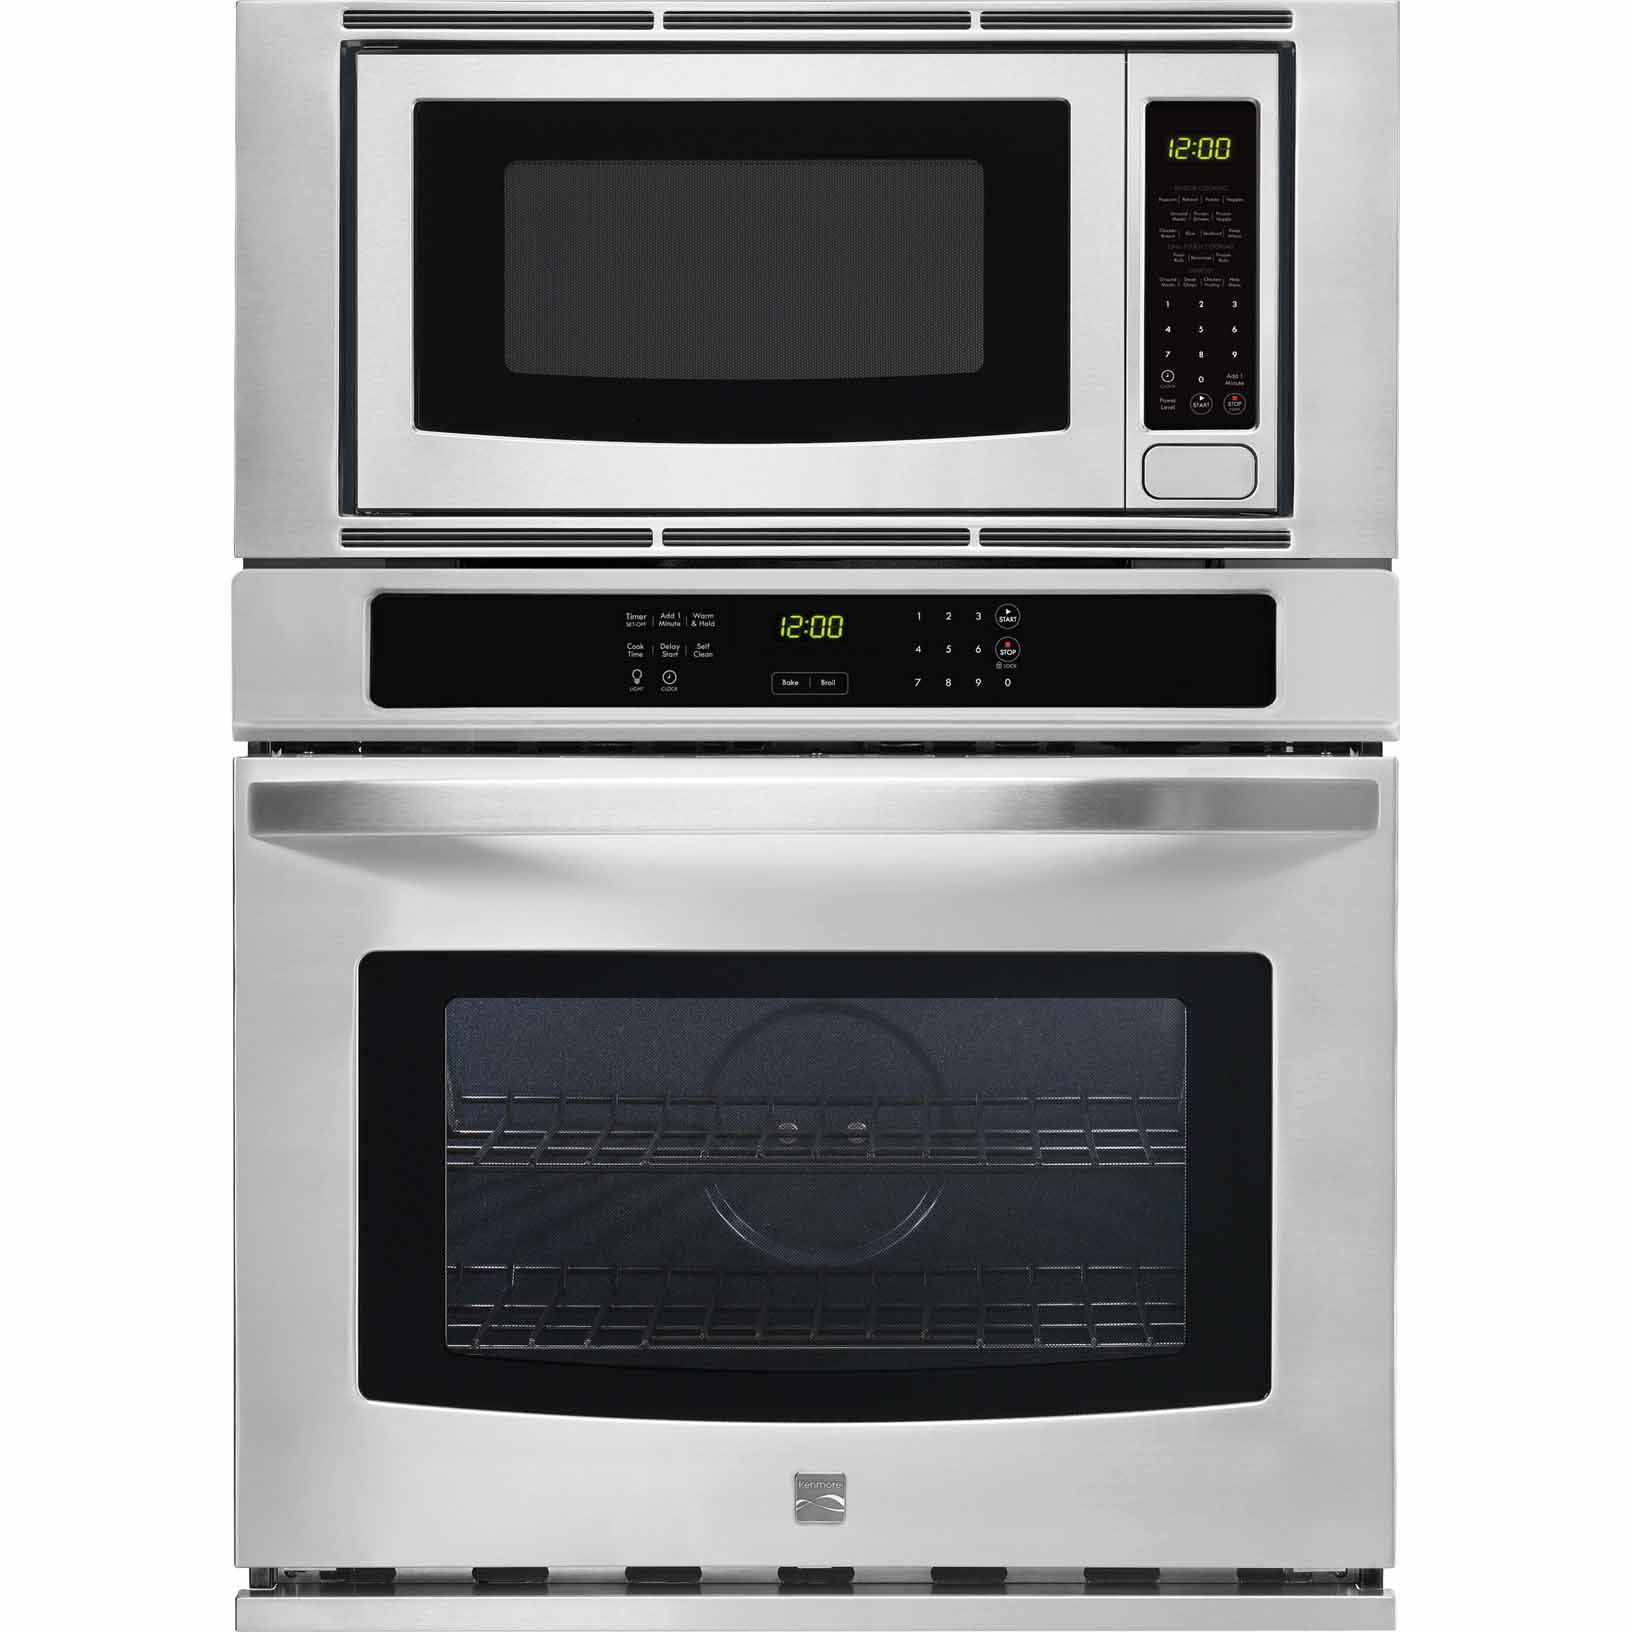 Kenmore 27 Electric Combination Wall Oven - Stainless Steel